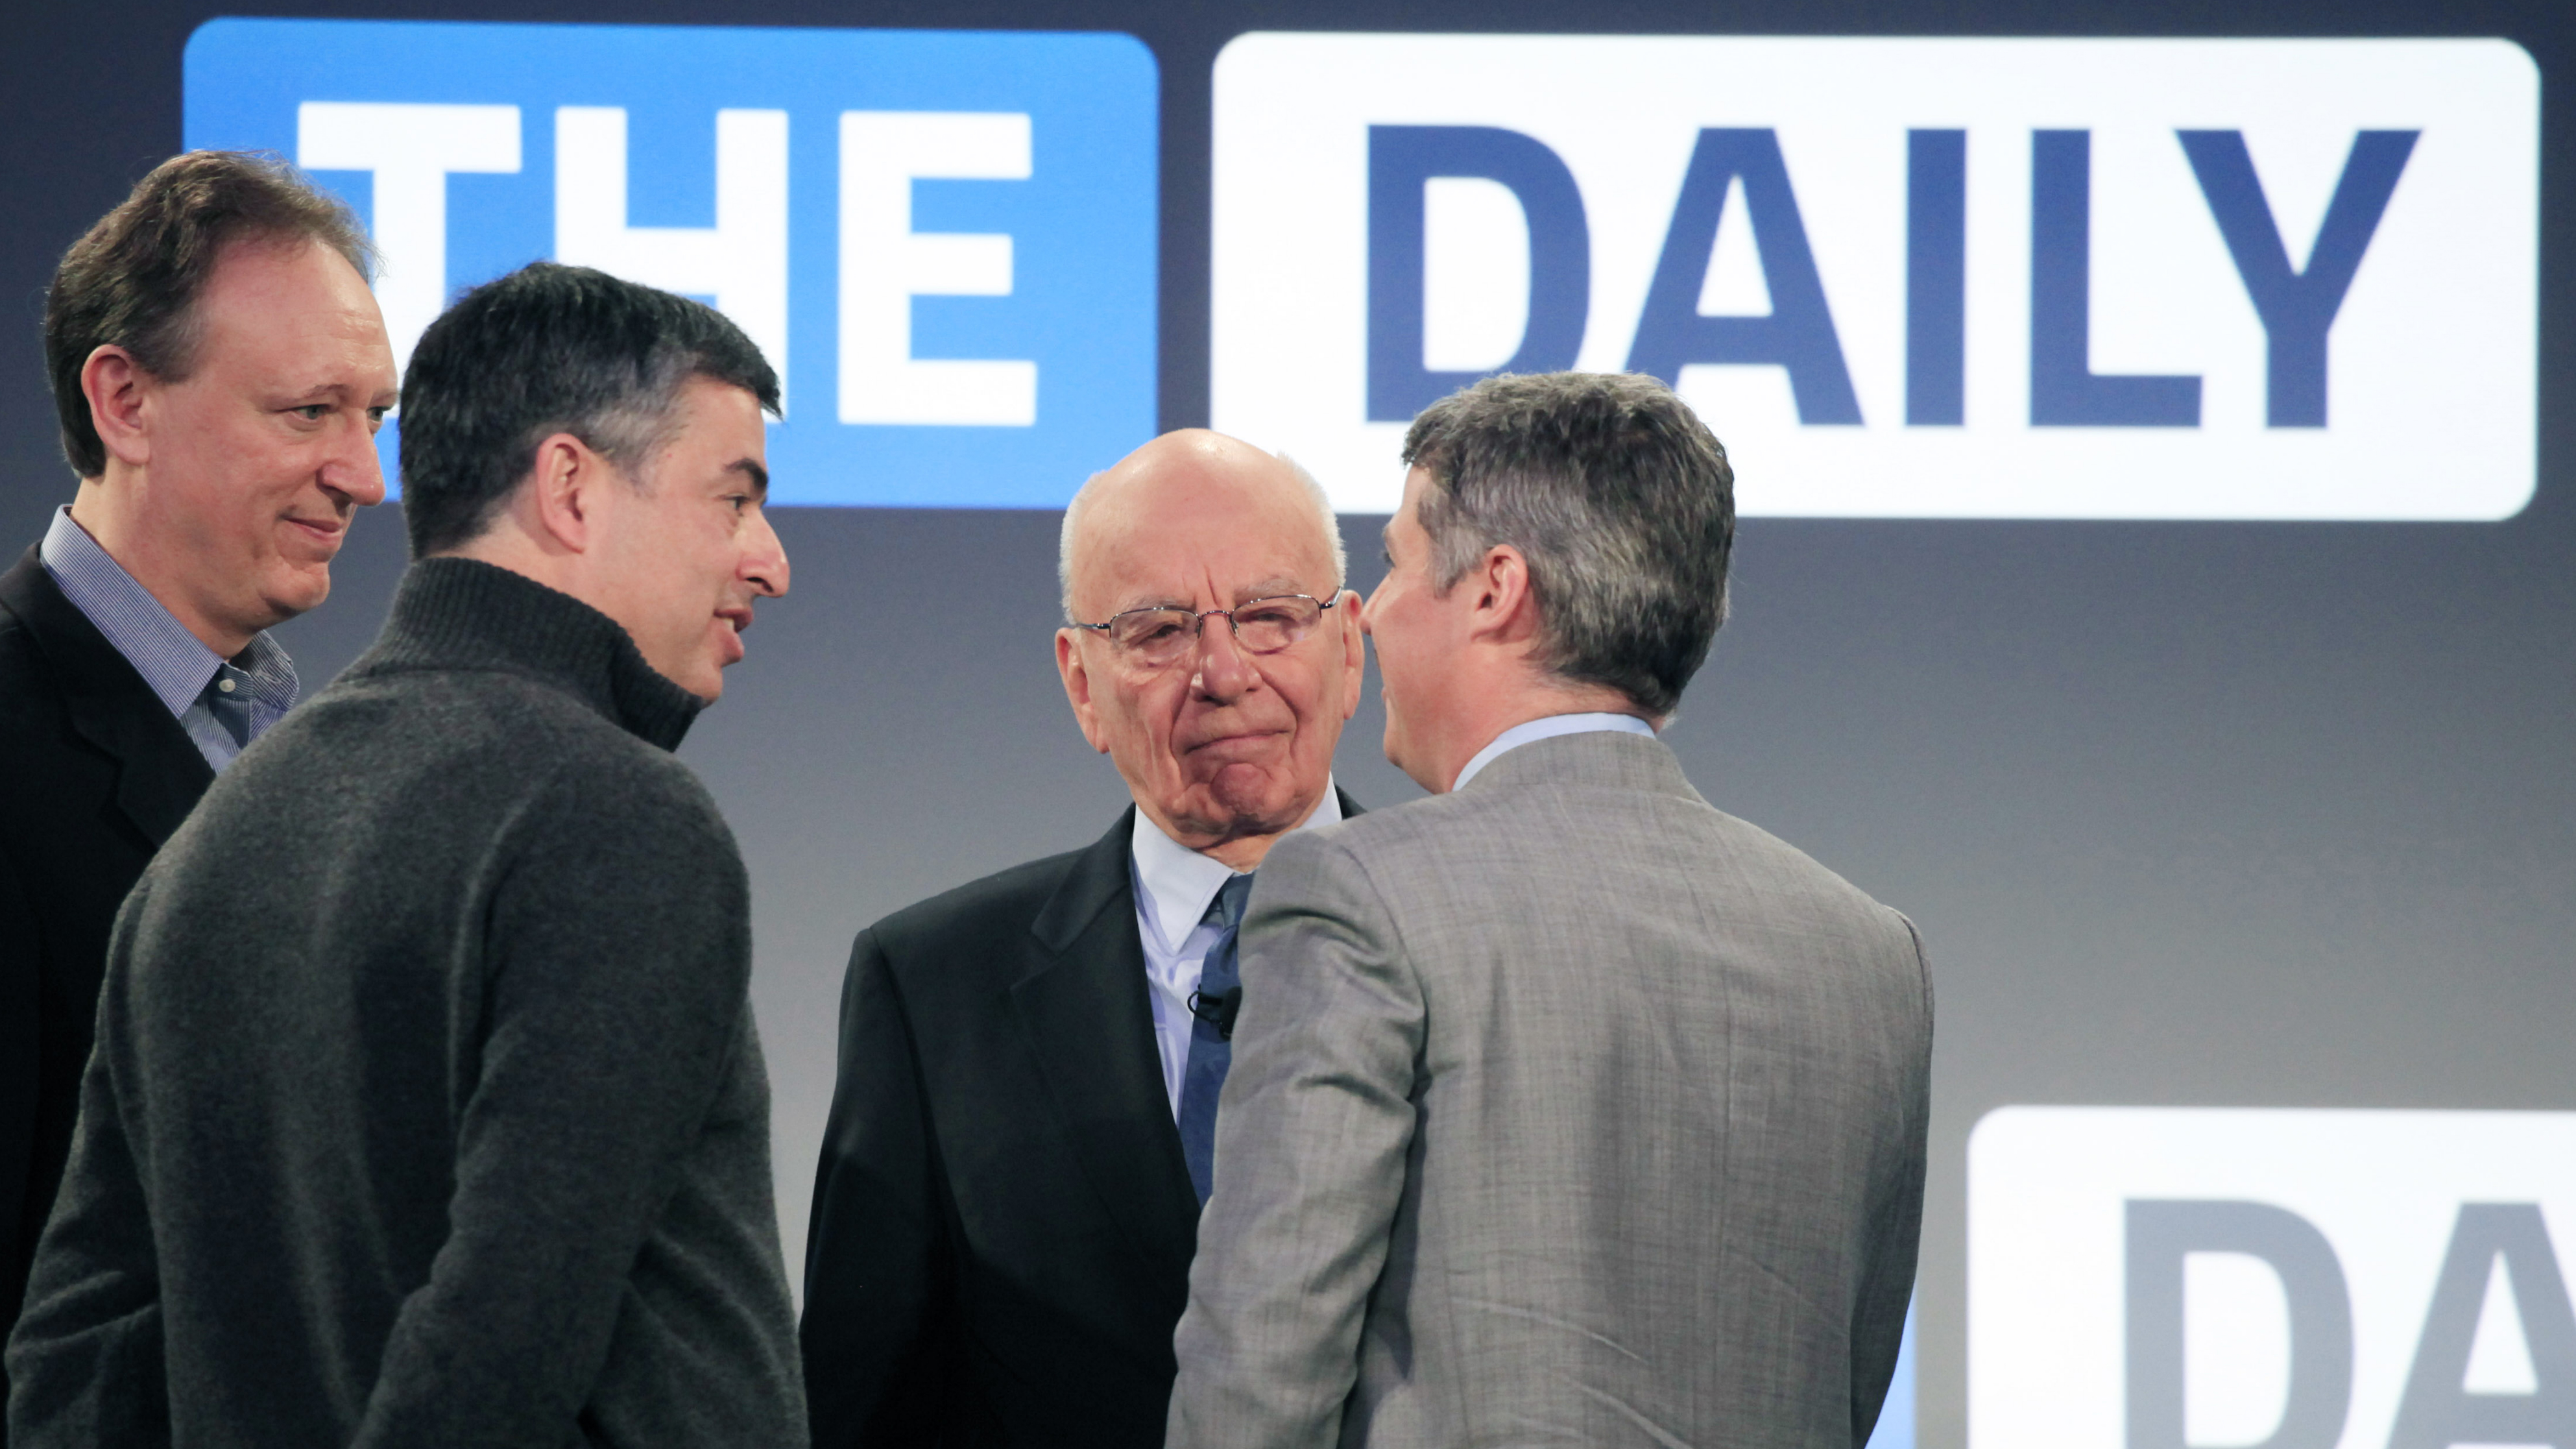 In better days: former News Corp. CDO Jon Miller, Apple SVP Eddy Cue, News Corp. CEO Rupert Murdoch, and The Daily editor-in-chief Jesse Angelo